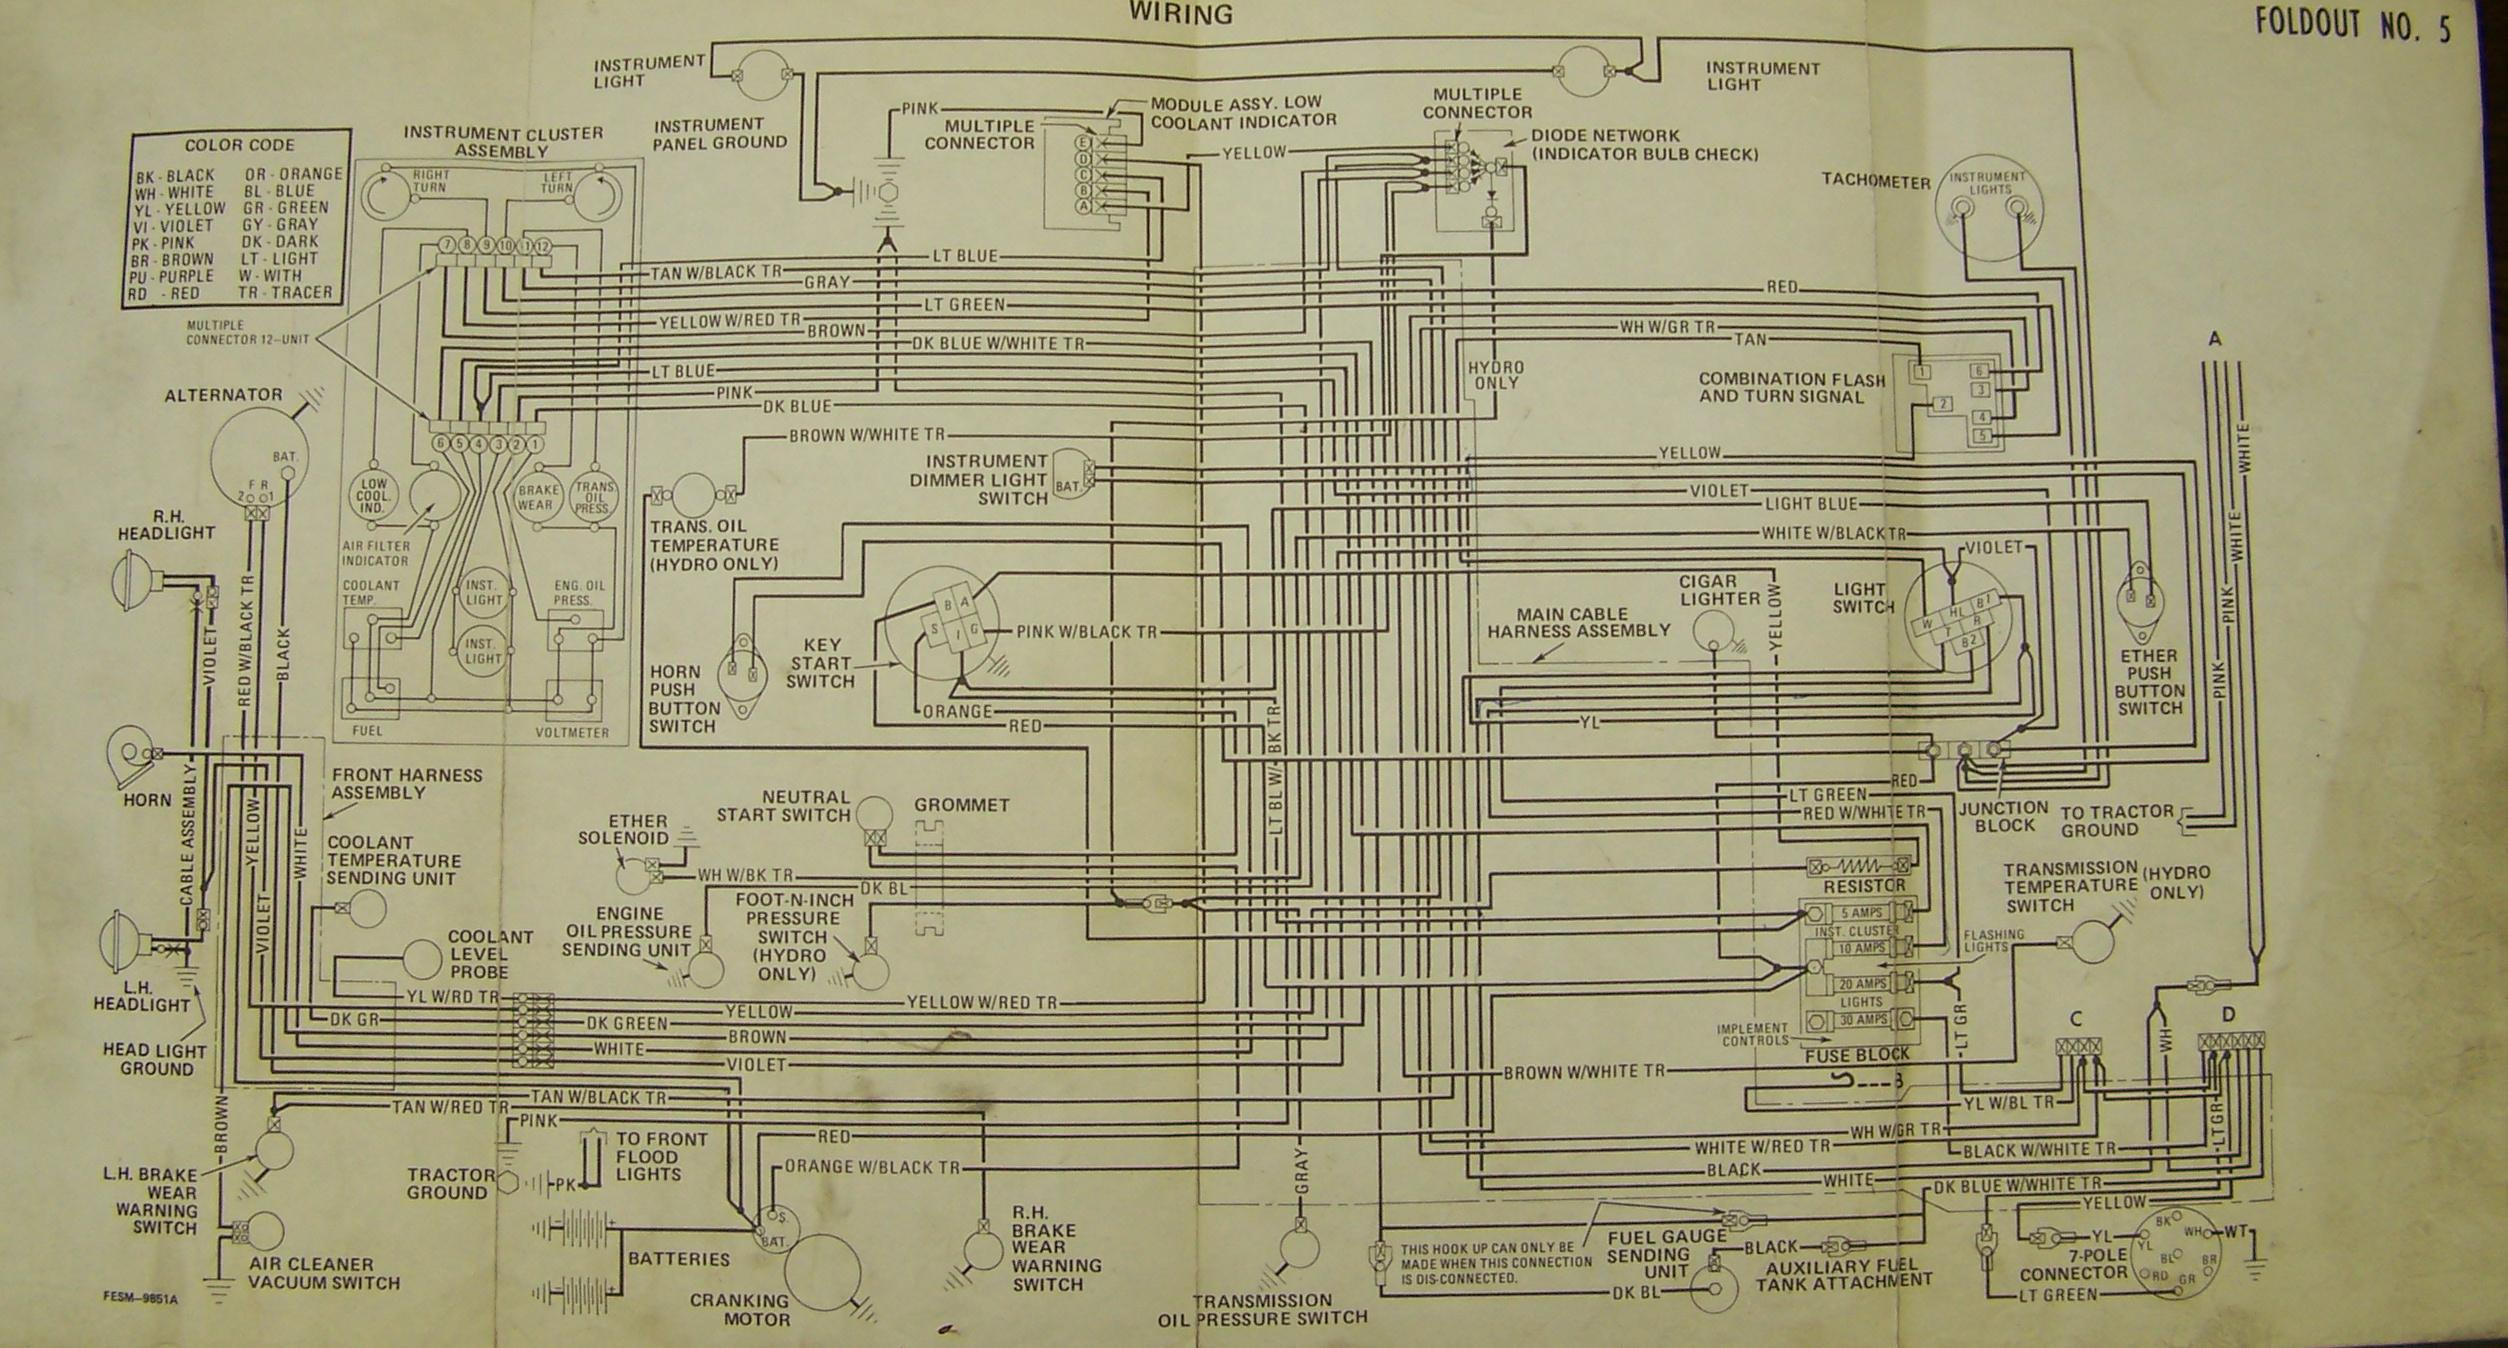 86series5 ih tractor wiring diagram ih tractor power steering \u2022 free wiring case 530 tractor wiring diagram at soozxer.org